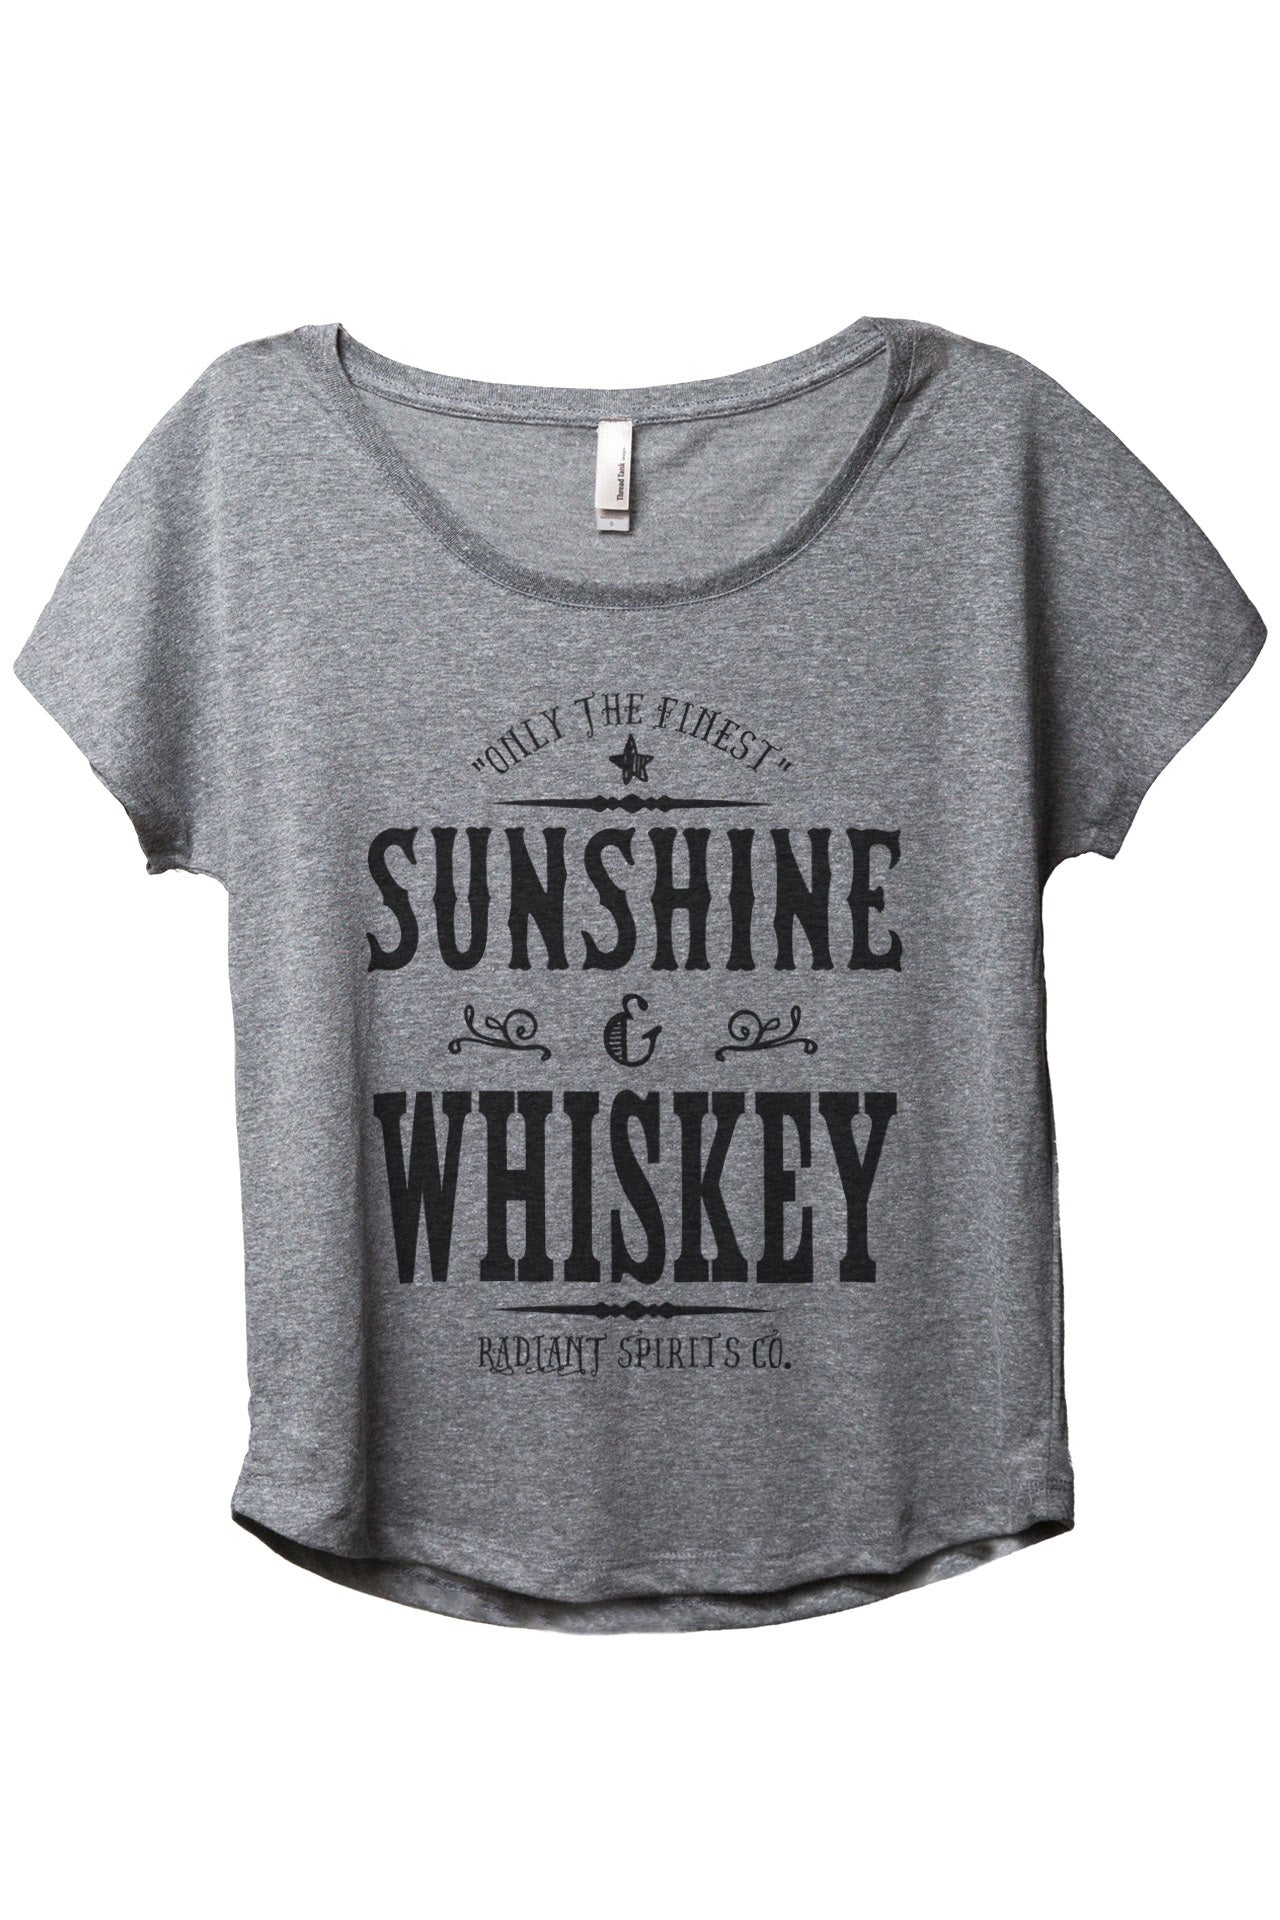 Only The Finest Sunshine & Whiskey Radiant Spirits Co Women's Relaxed Slouchy Dolman T-Shirt Tee Heather White